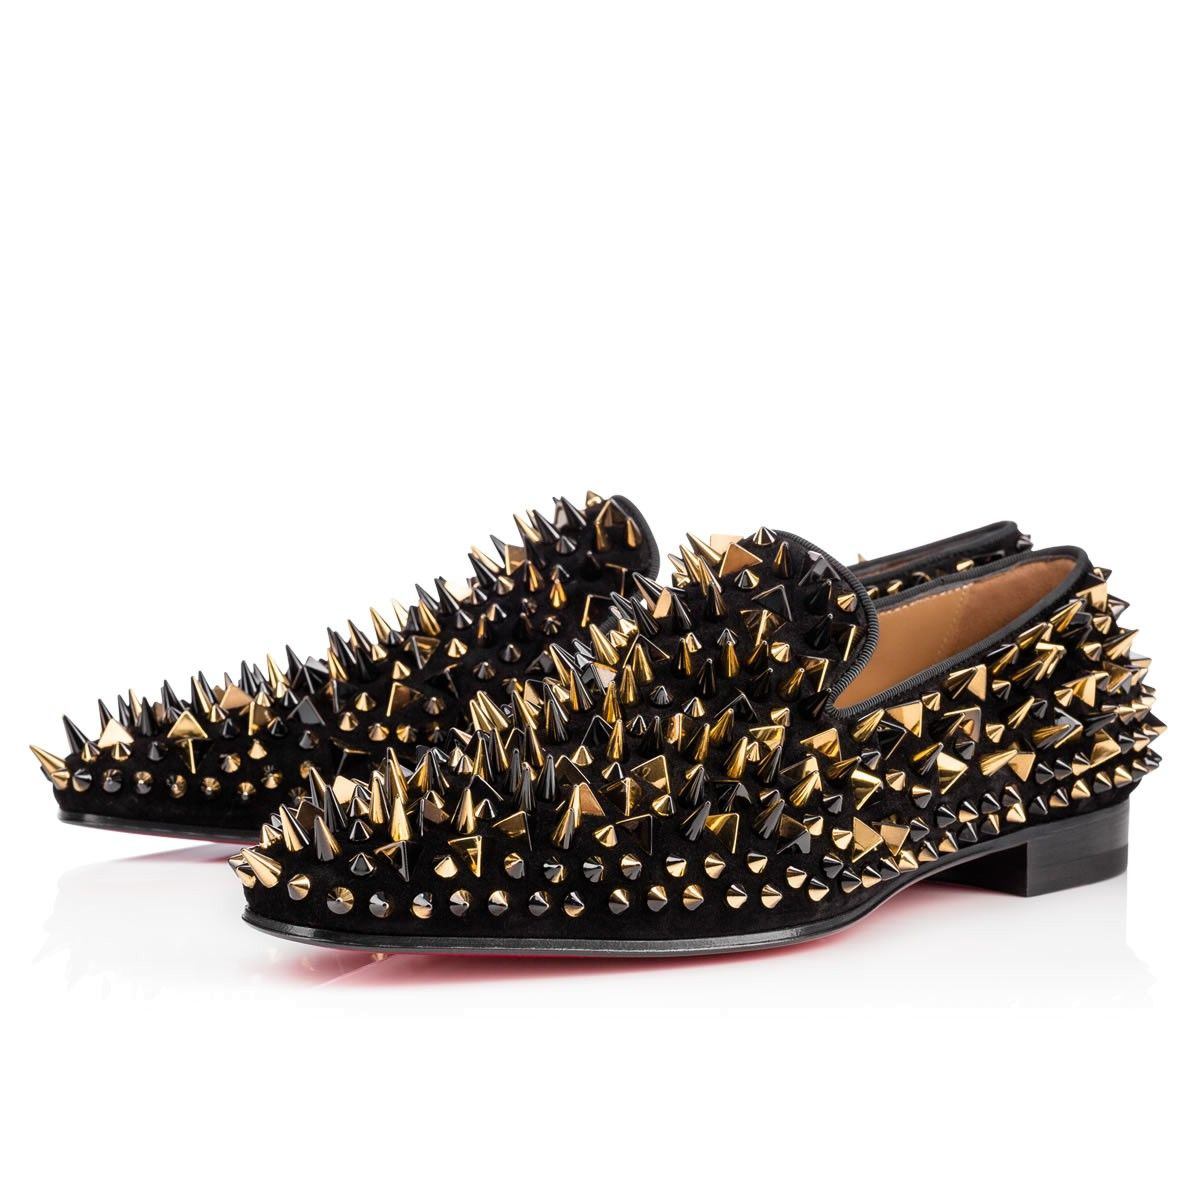 Christian Louboutin Men Shoes : Discover the latest Men Shoes collection  available at Christian Louboutin Online Boutique.